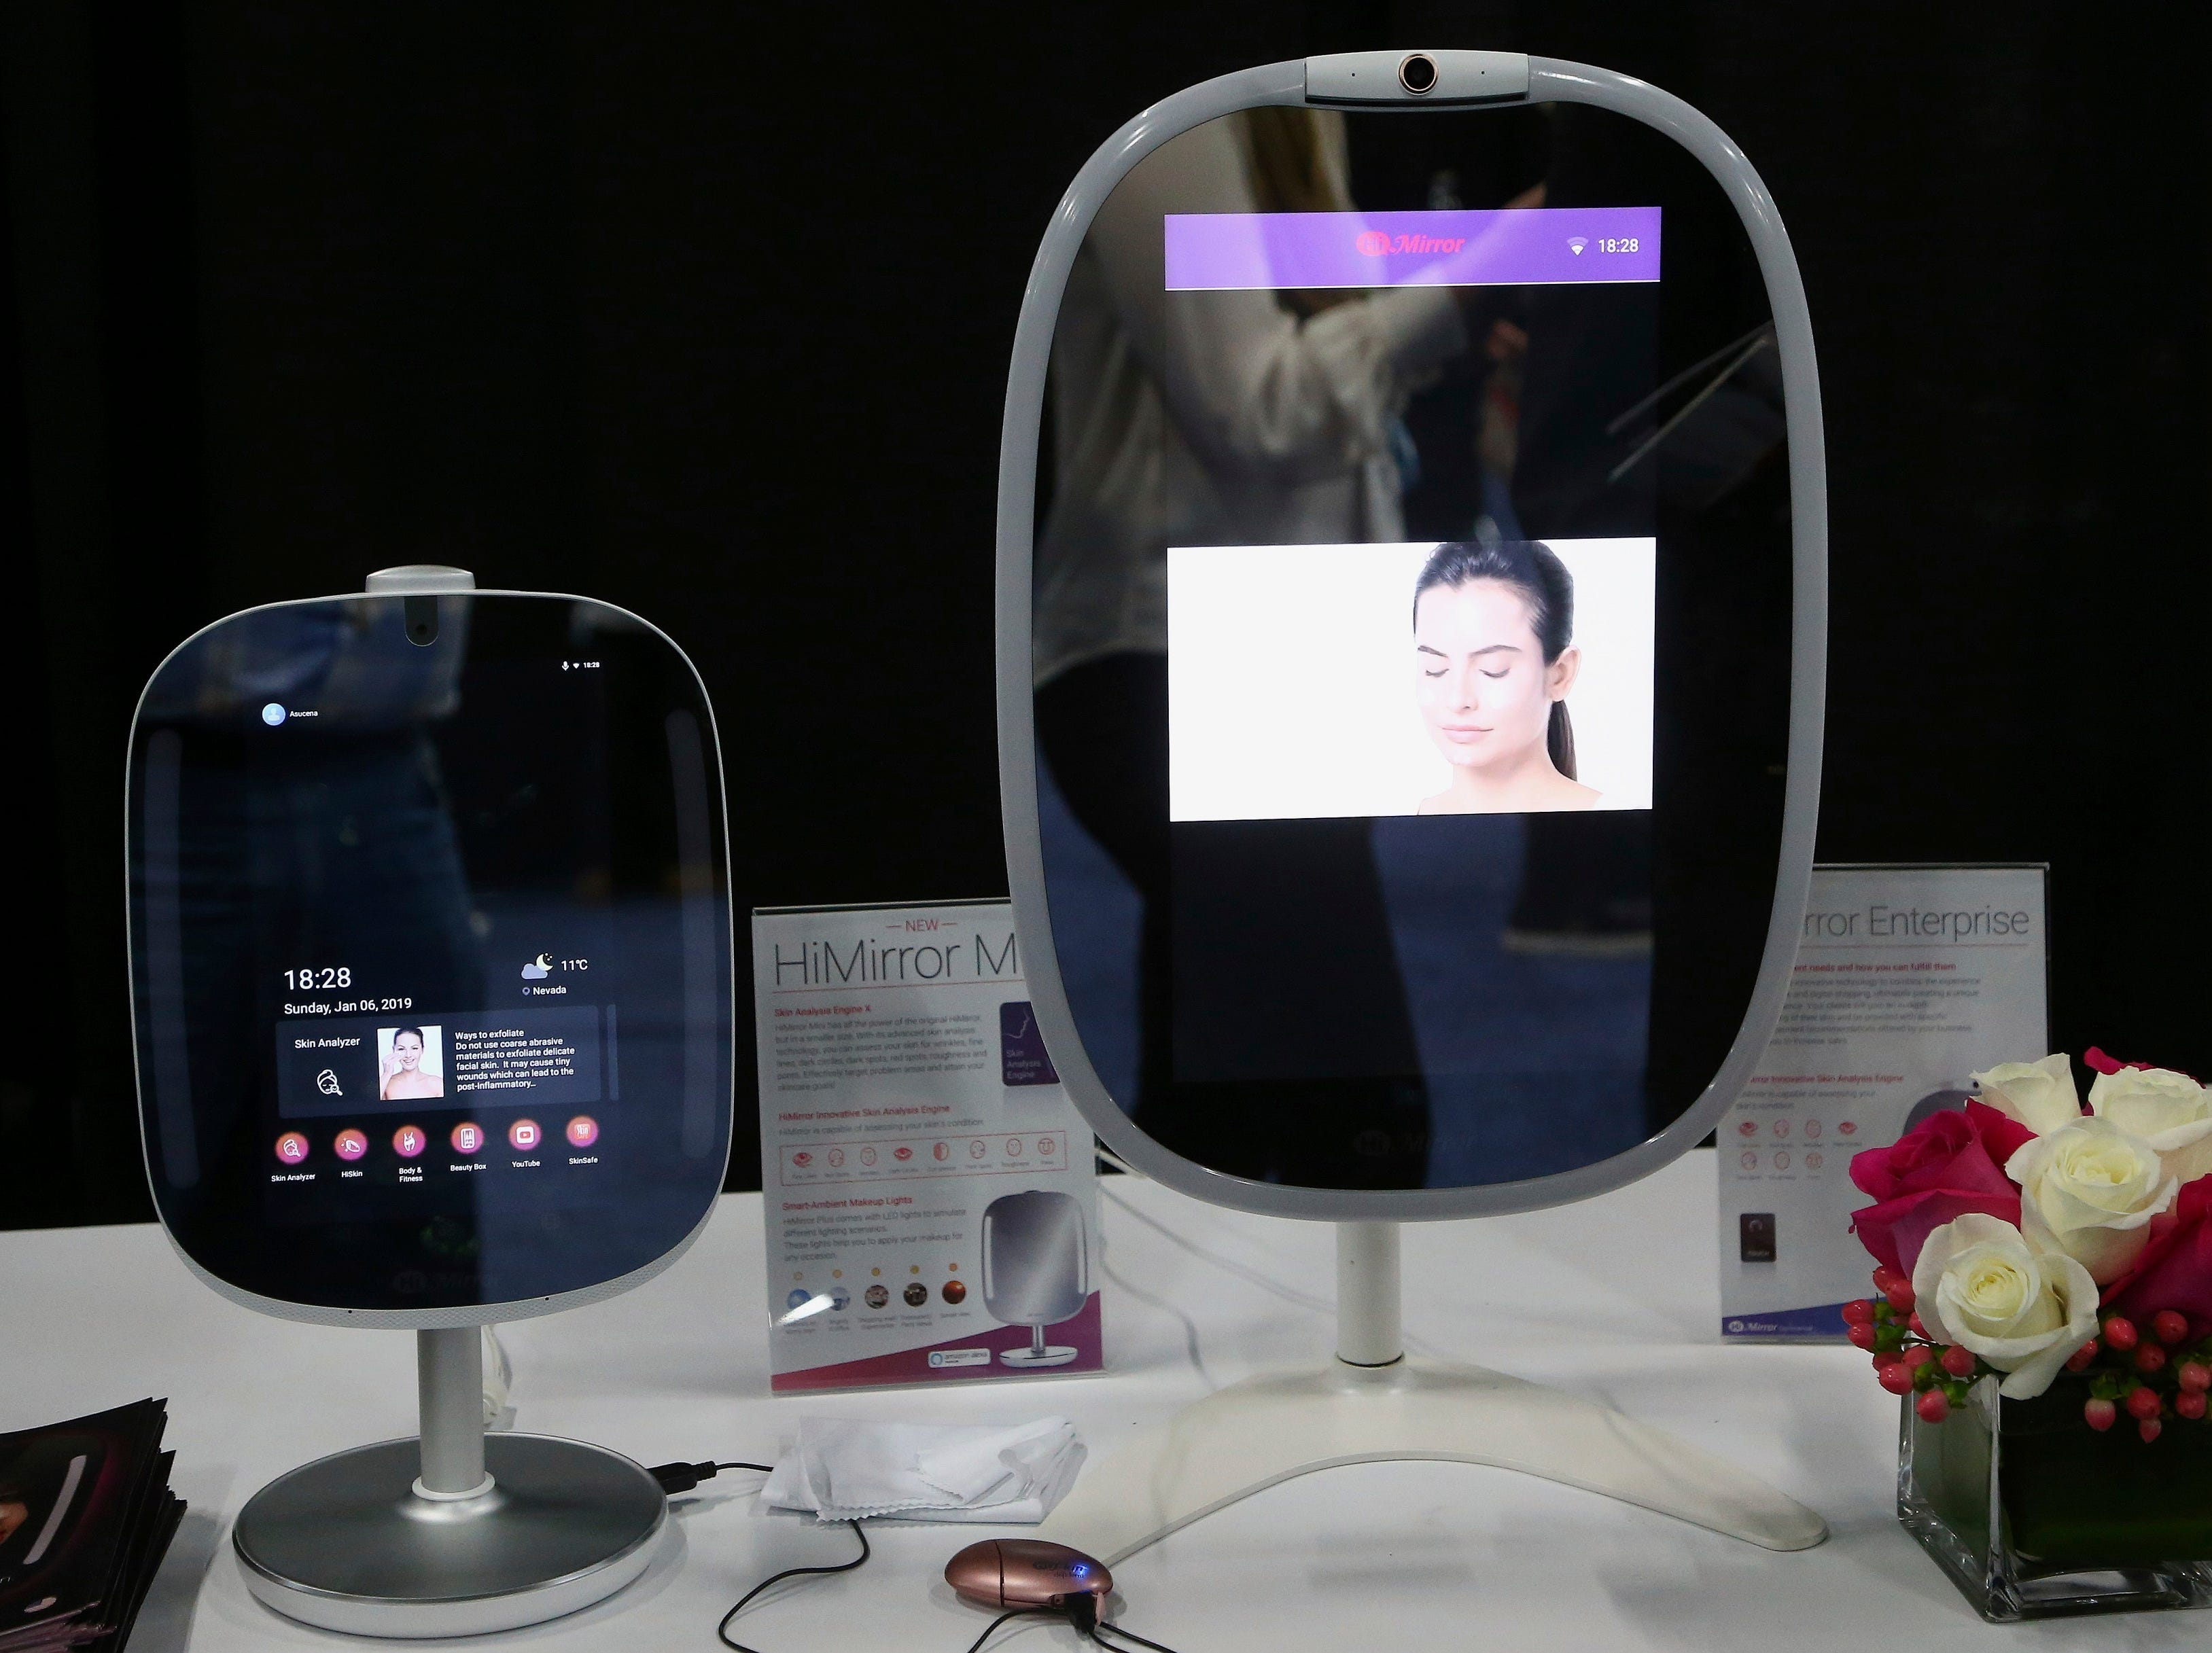 Two different sizes of the HiMirror uses its skin analysis technology, to assess your skin for wrinkles, fine lines, dark circles, dark spots, red spots, roughness, and pores, shown here at the CES Unveiled at CES International on Sunday, Jan. 6, 2019, in Las Vegas.